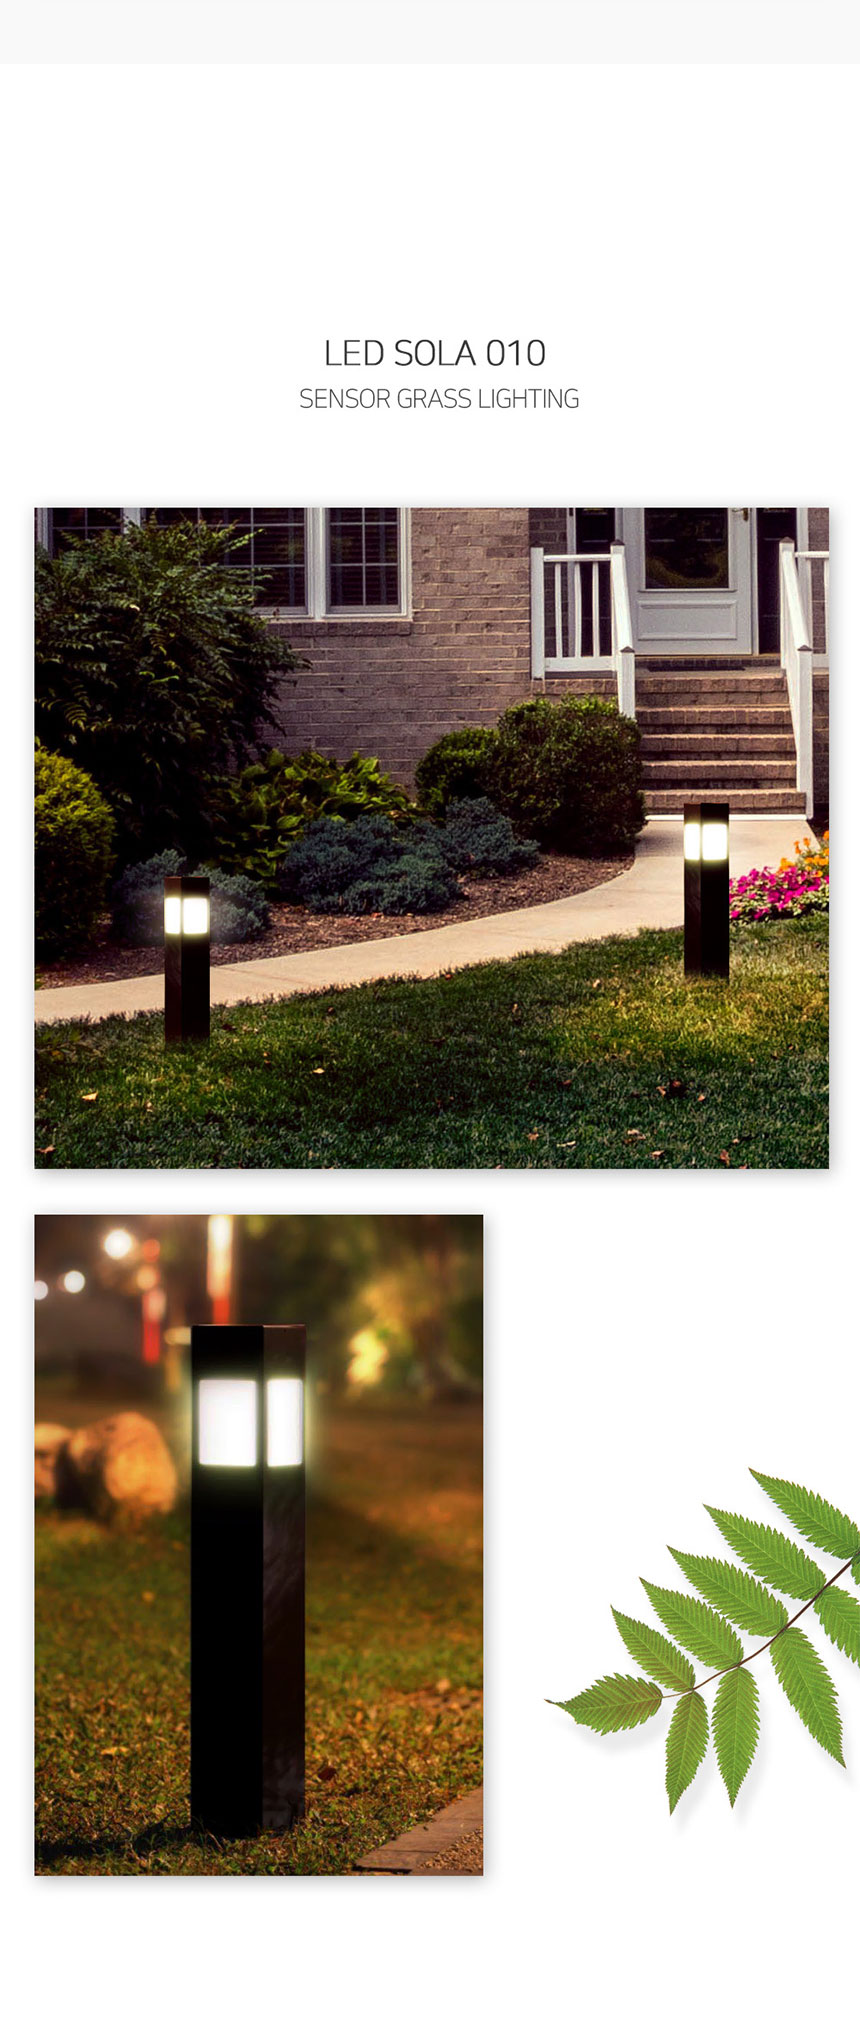 LED SOLA 010 SENSOR GRASS LIGHTING